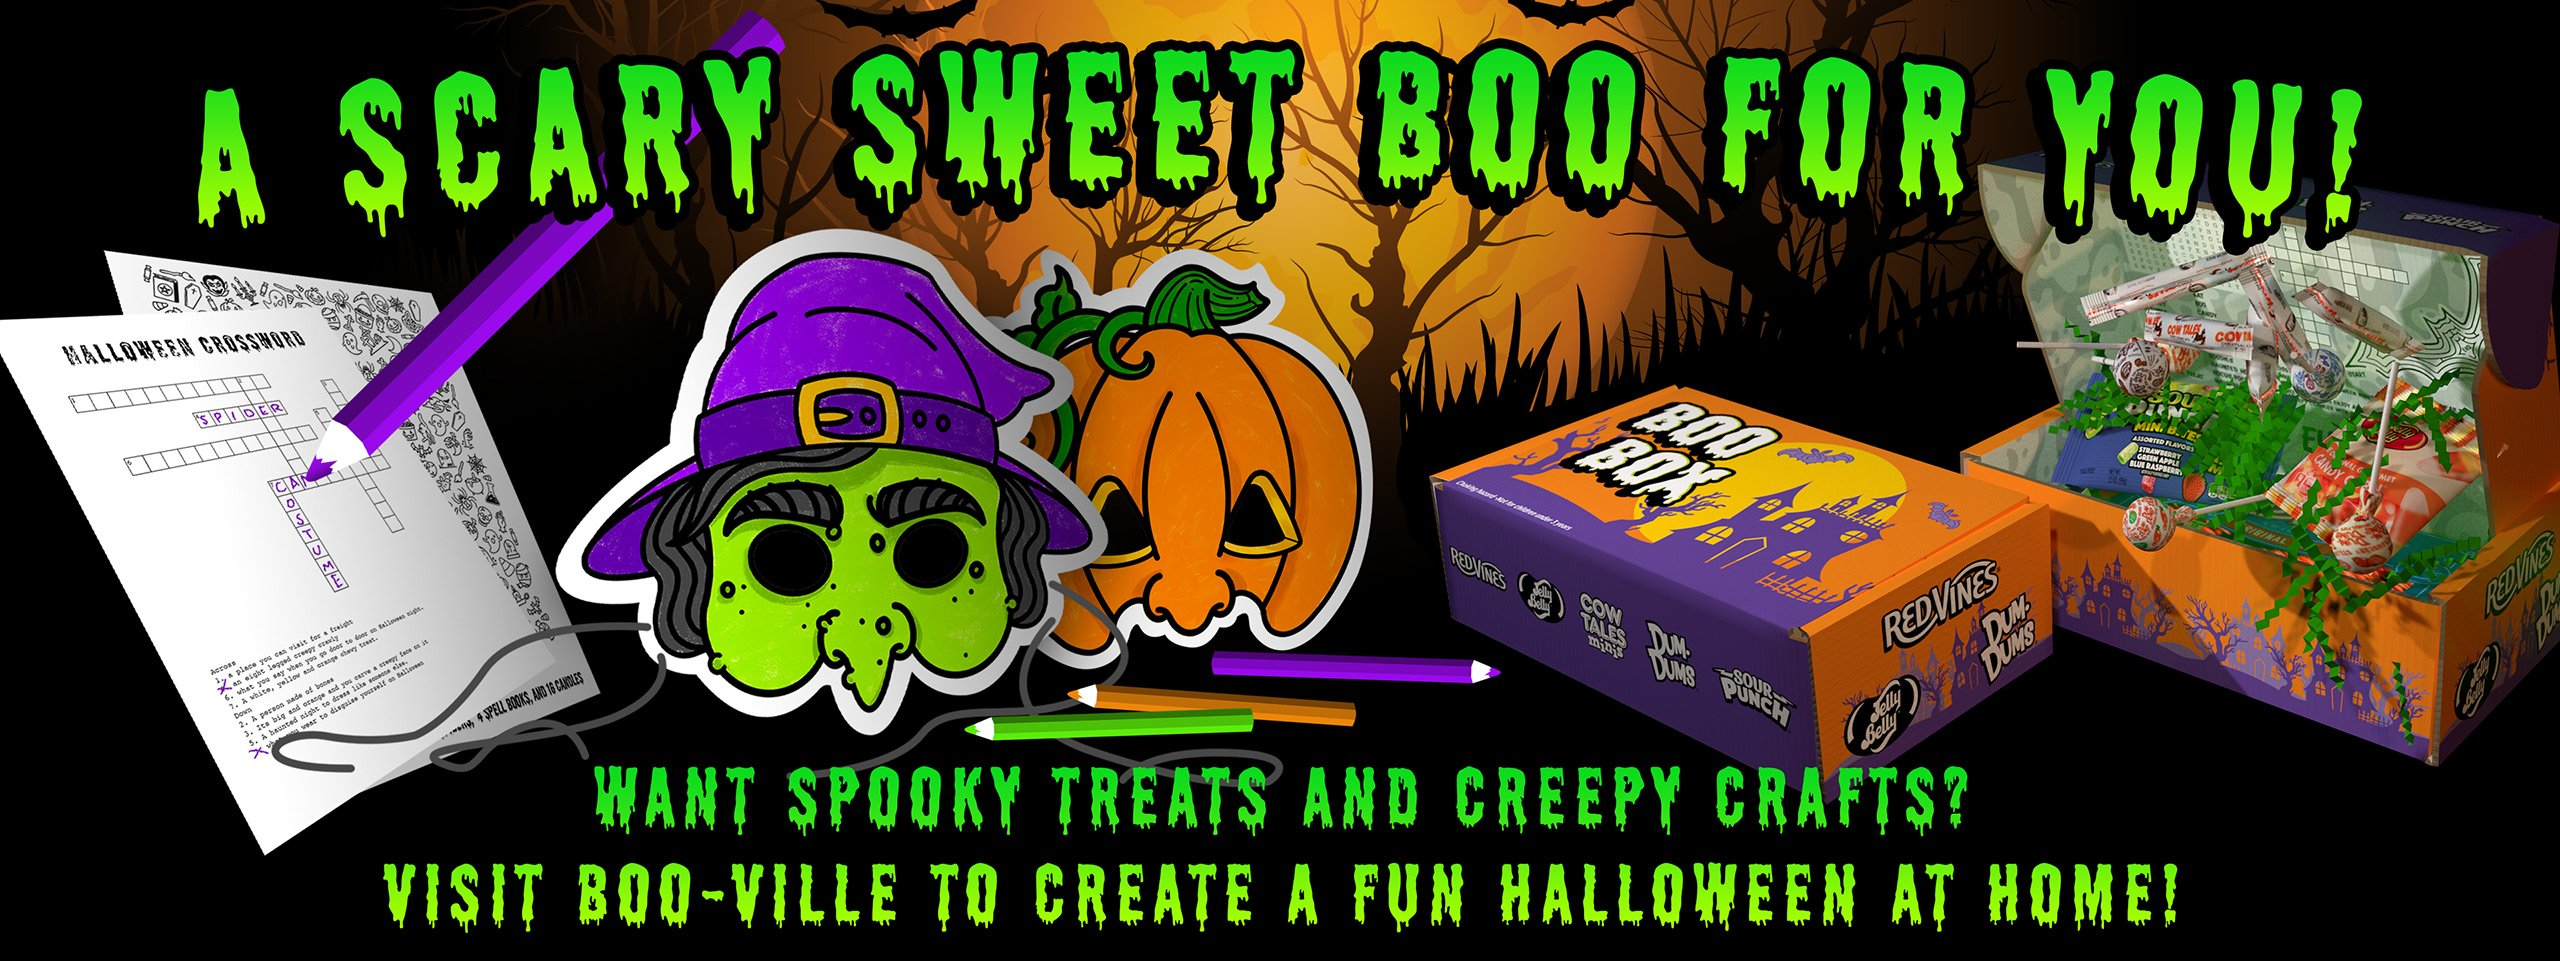 A Scary Sweet Boo For You!